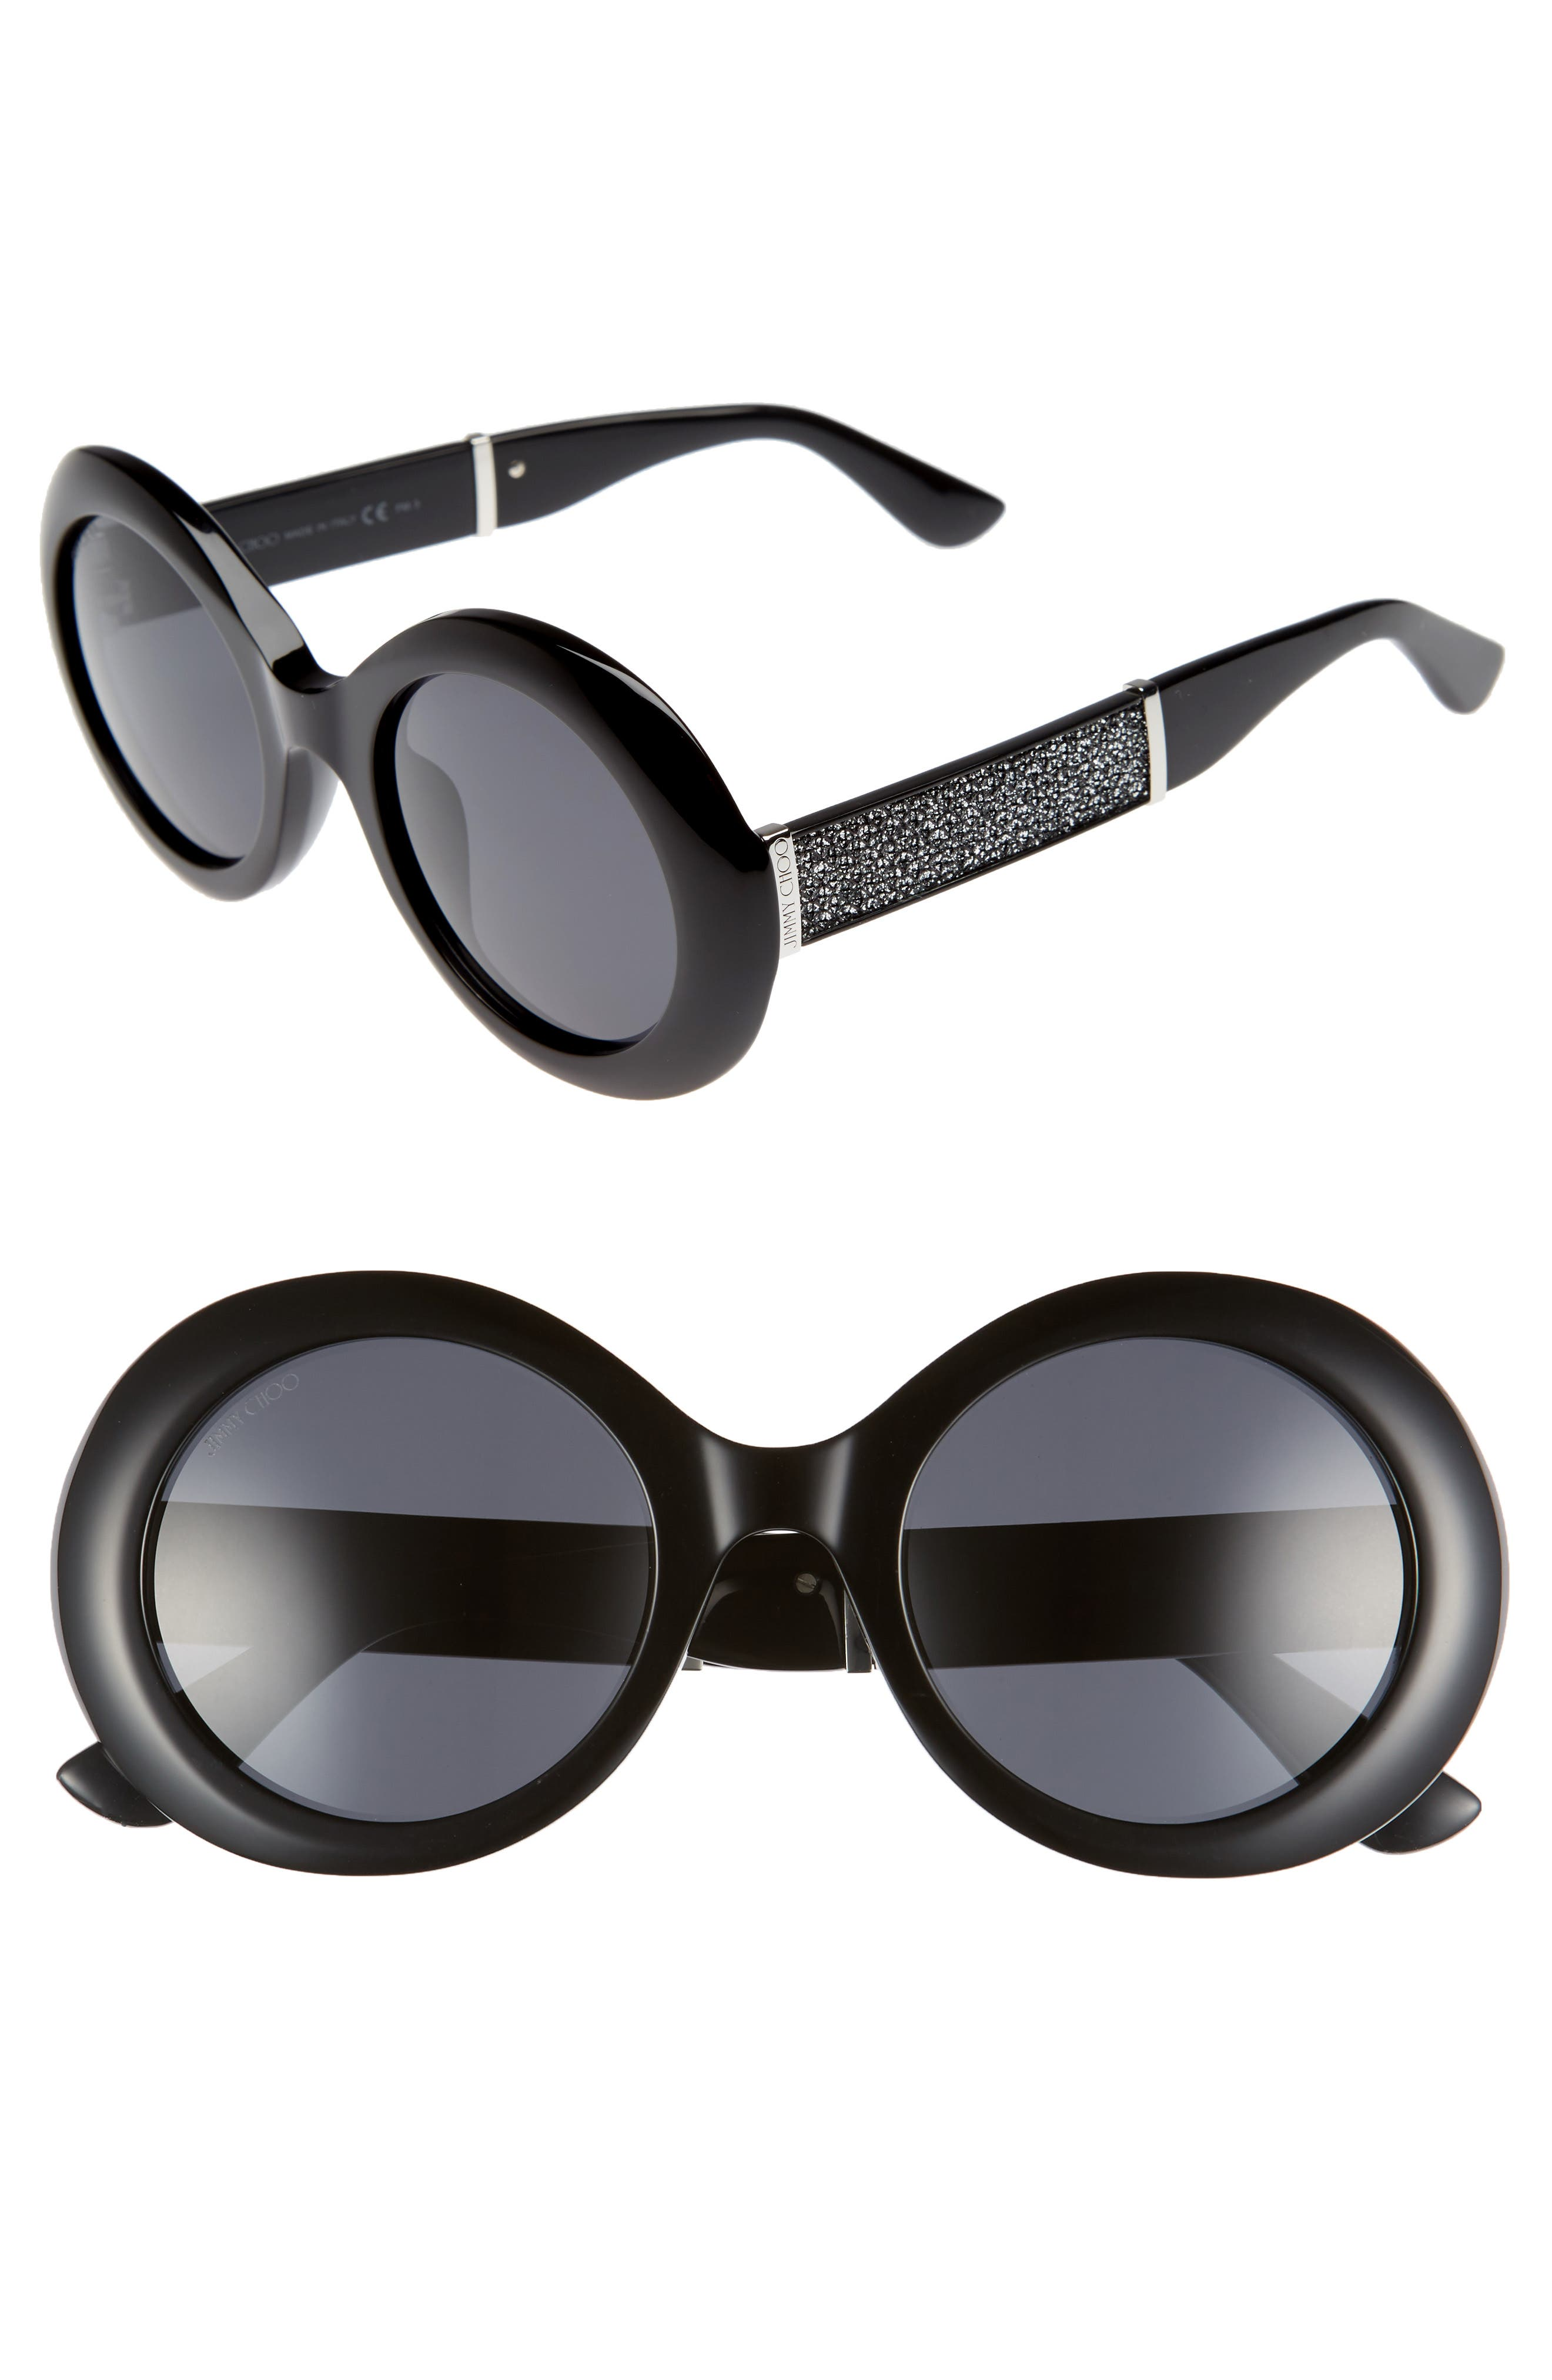 Wendy 51mm Round Sunglasses,                         Main,                         color, 001